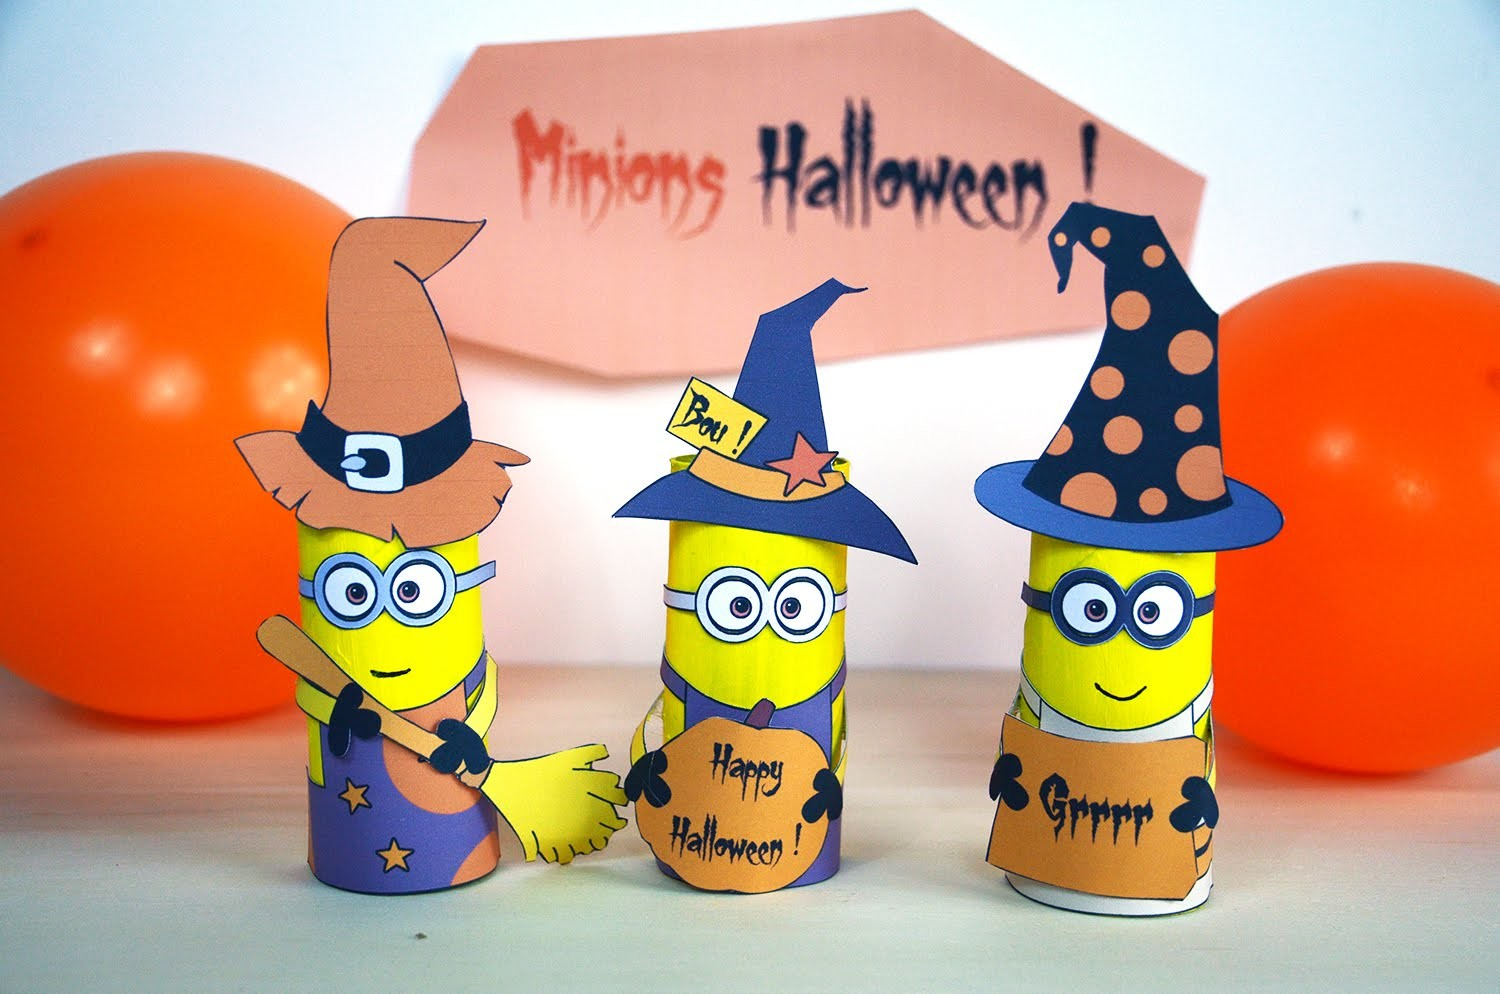 minions dhalloween activit manuelle bricolage enfant carton de papier toilette diy. Black Bedroom Furniture Sets. Home Design Ideas